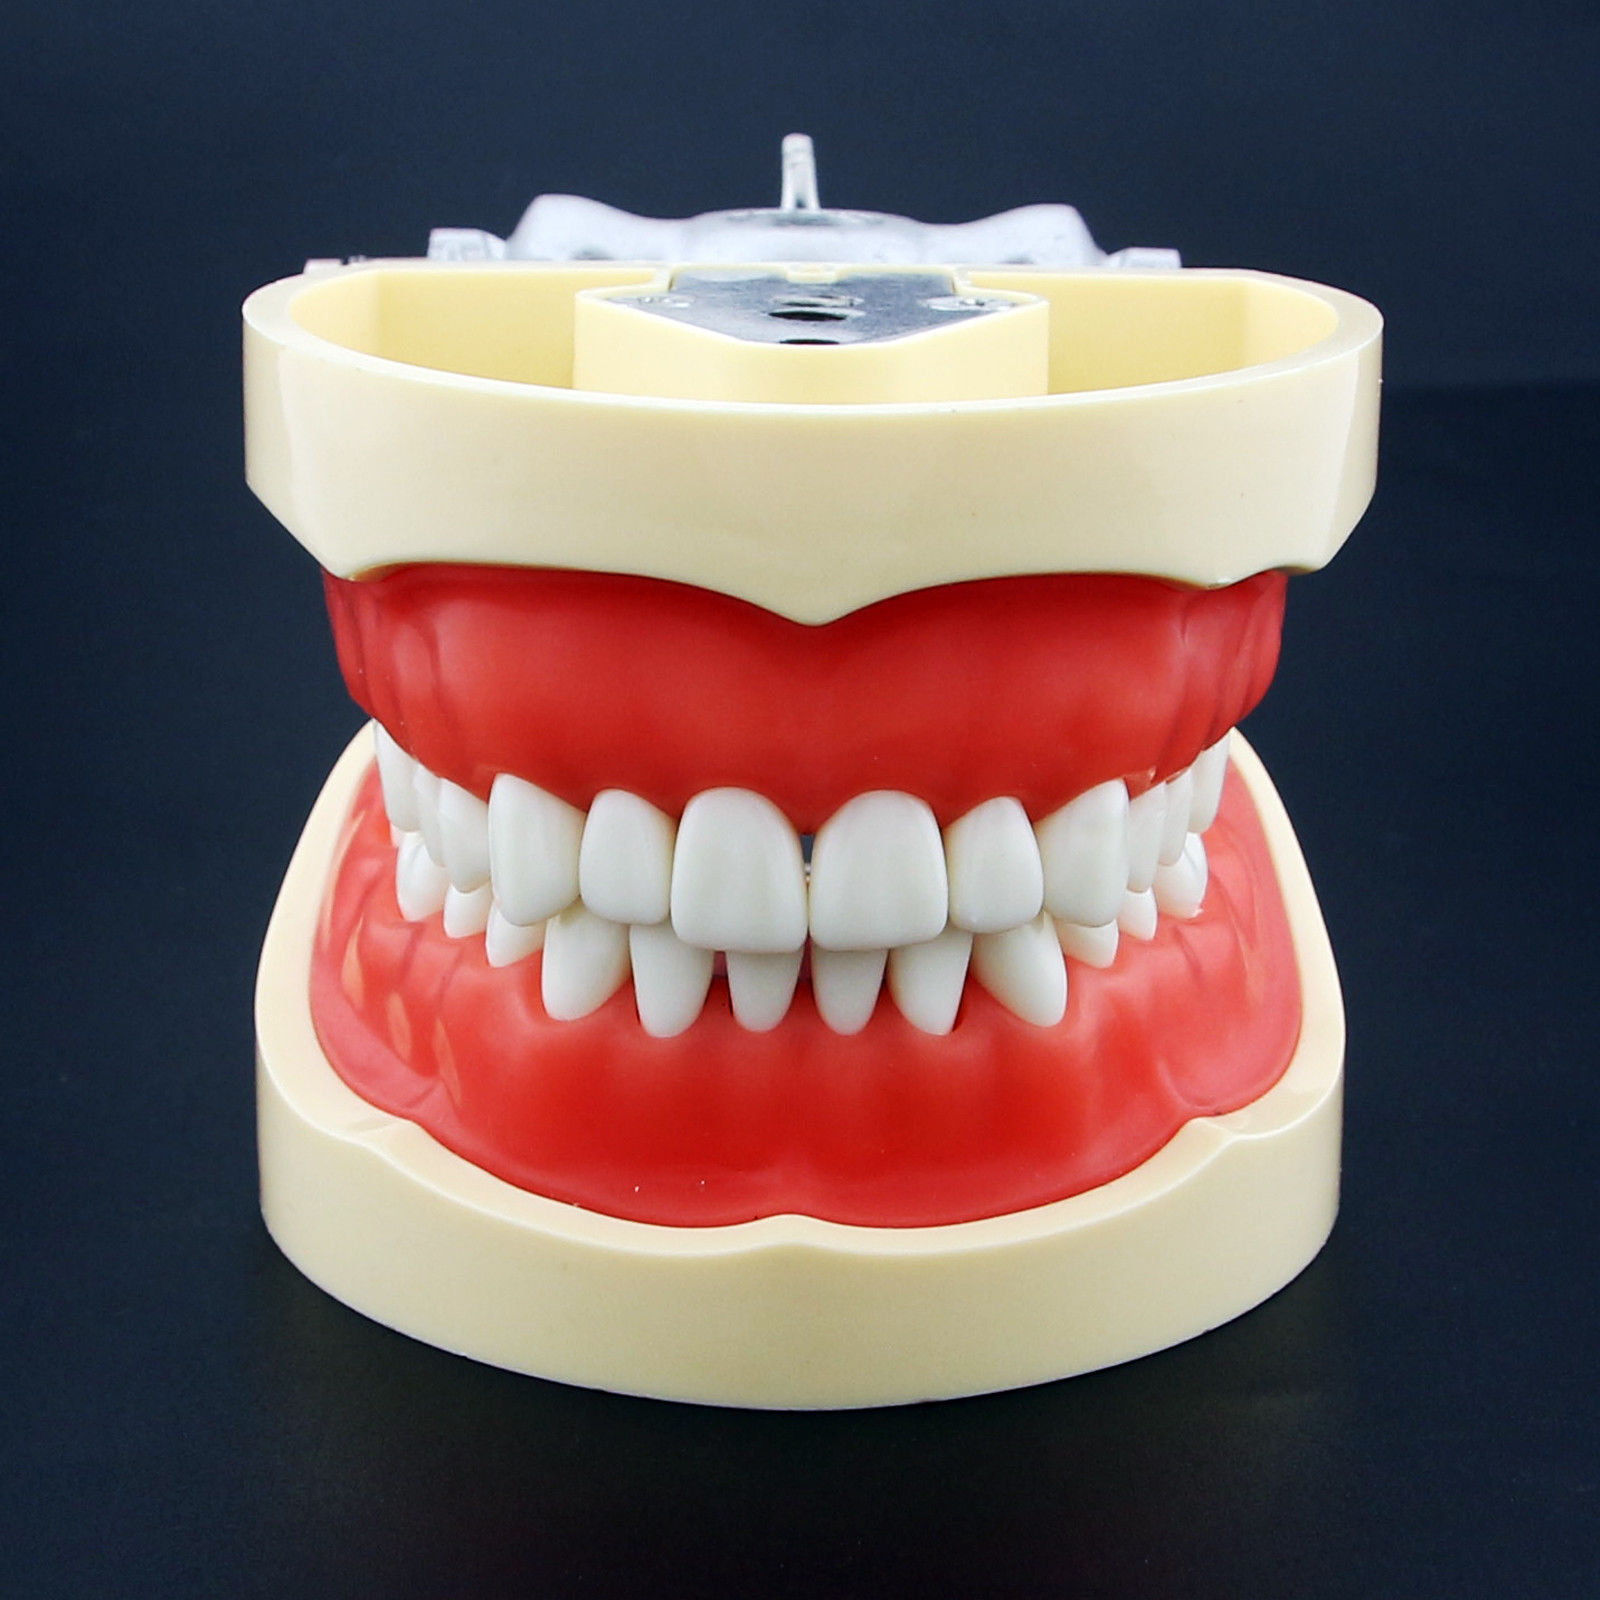 kilgore Nissin Type Dental Typodont Model 200 with Removable Teeth